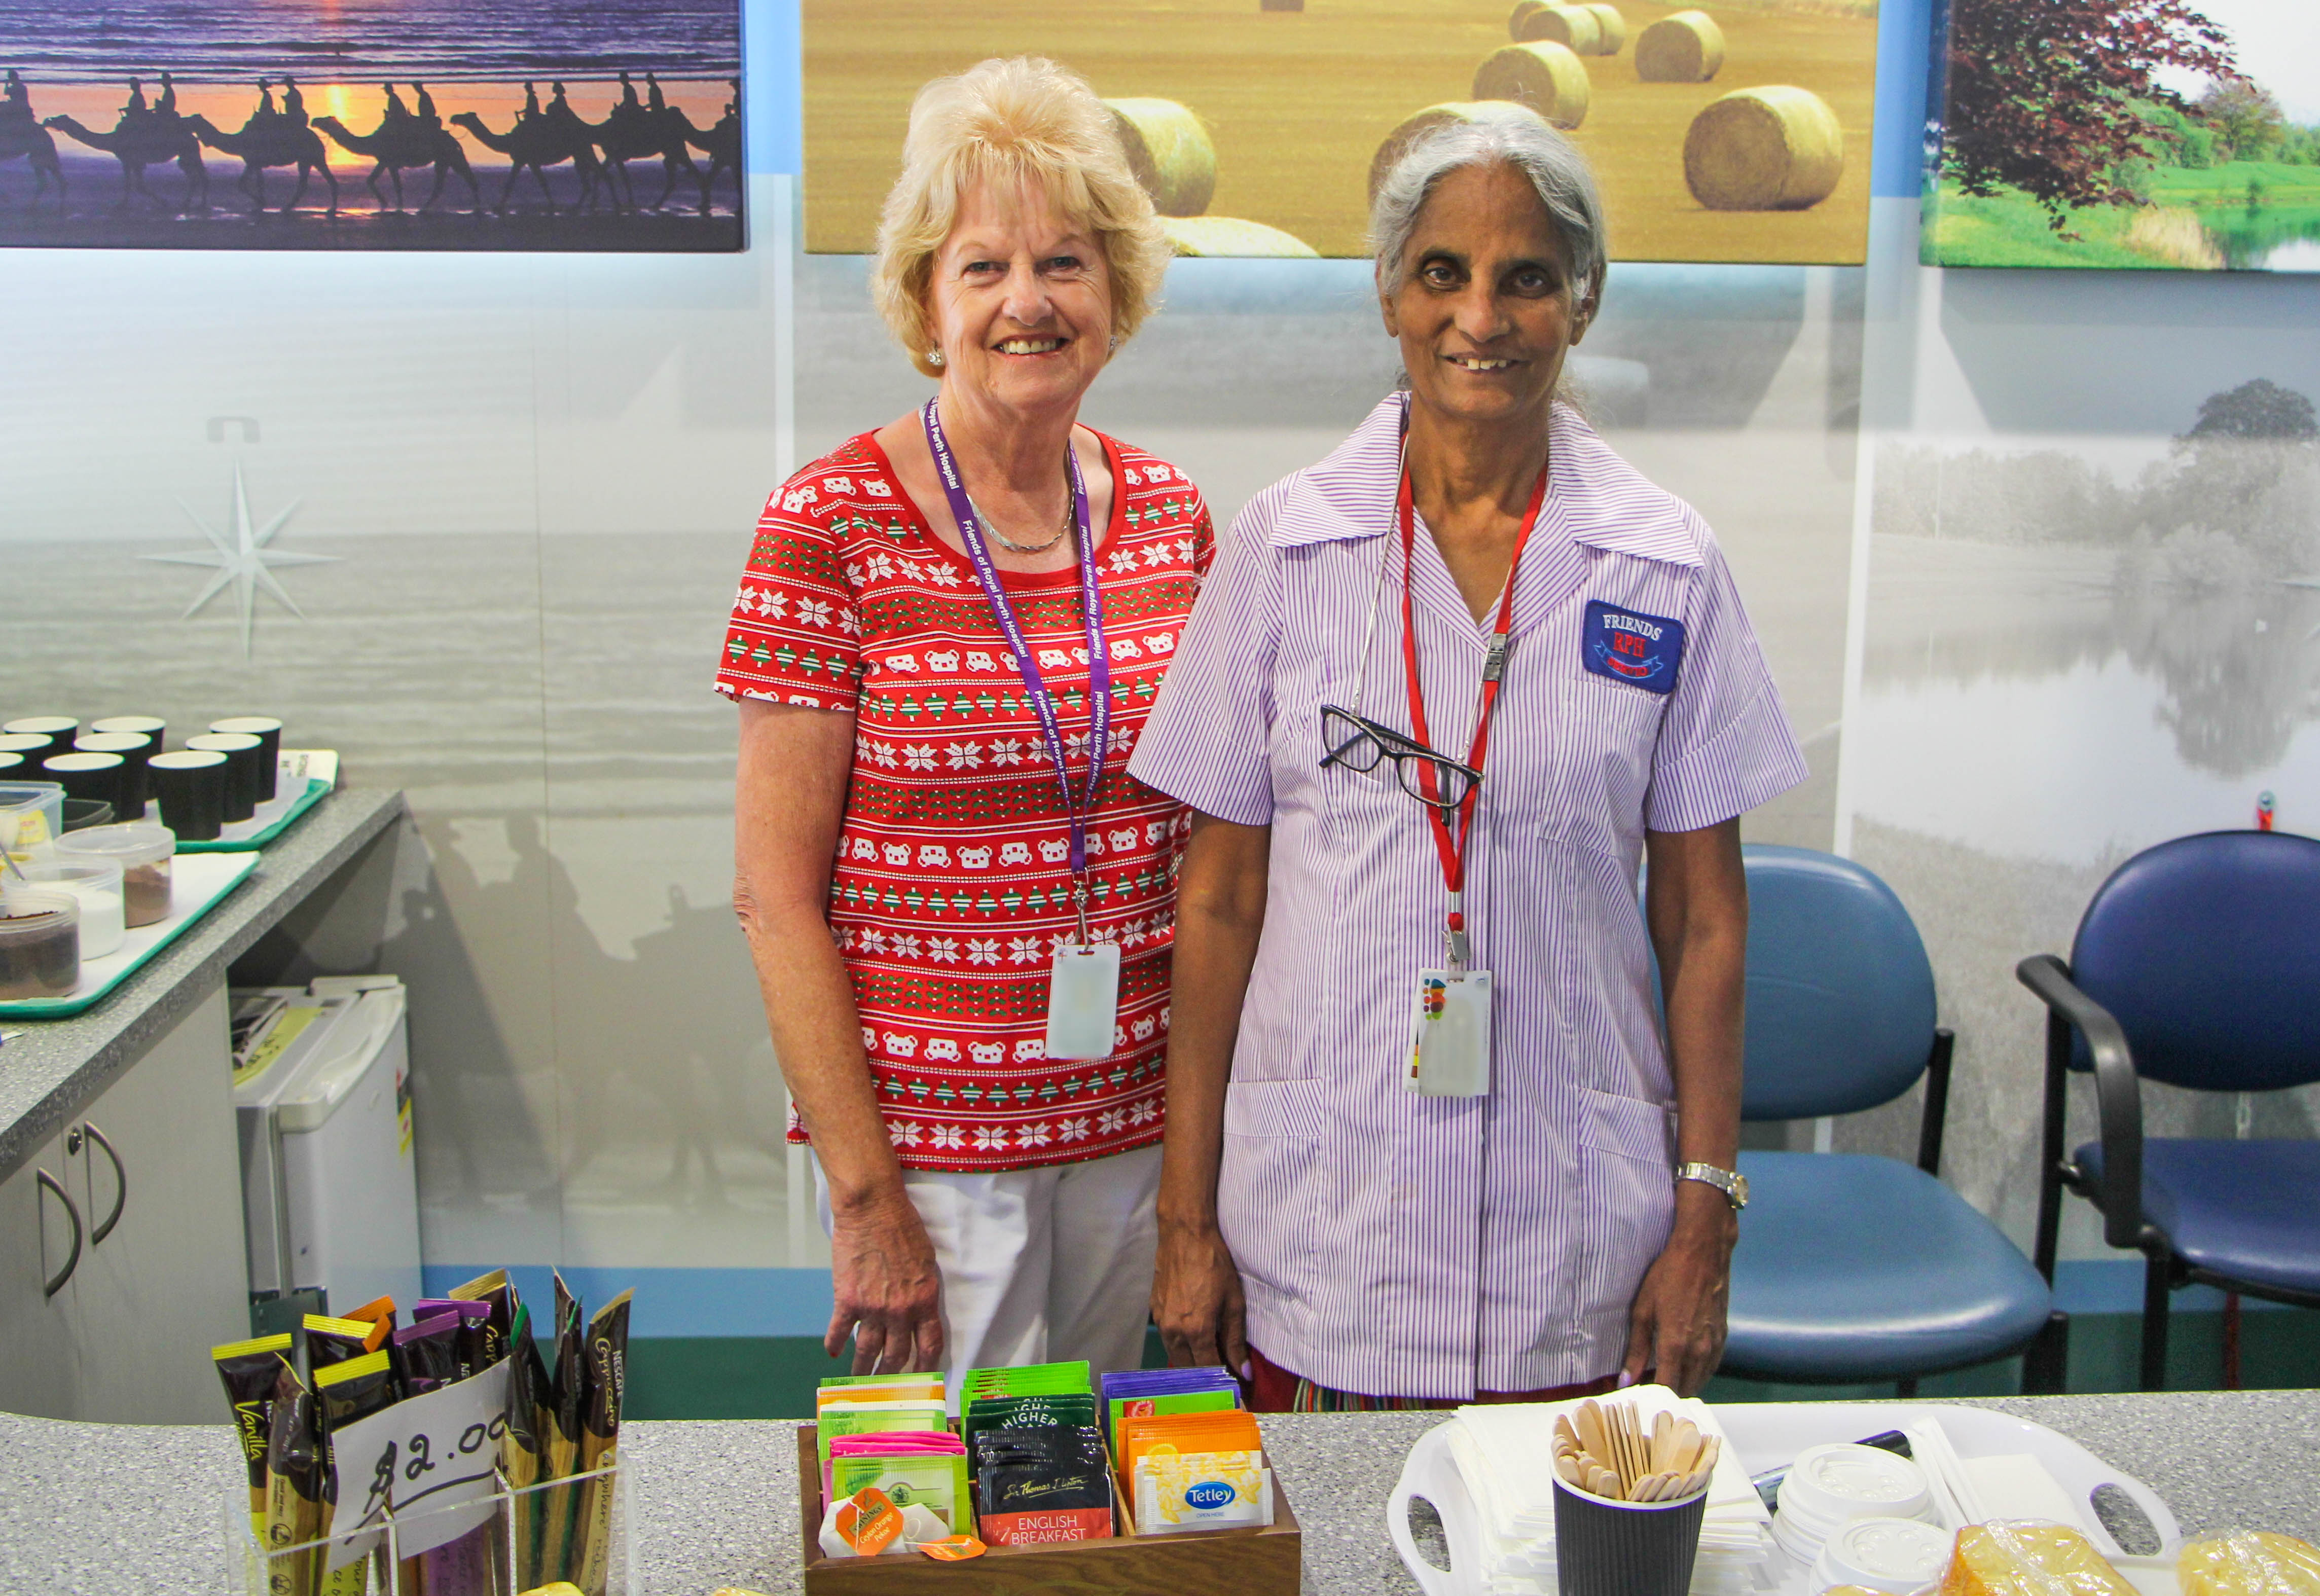 Photograph of Outpatient Kiosk staff